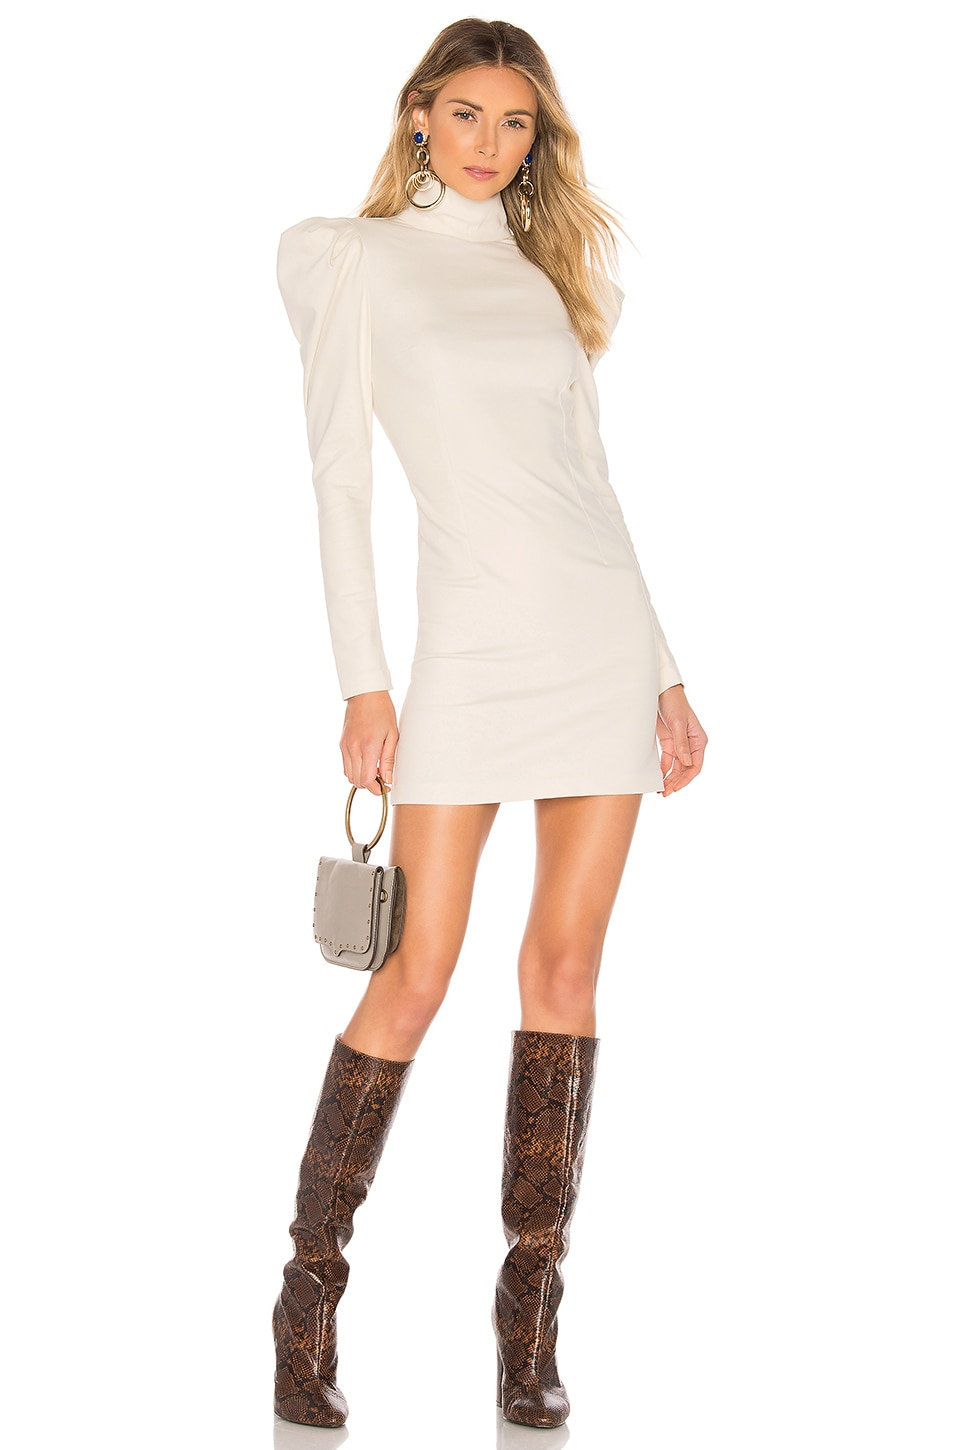 L'Academie The Judith Dress in Bone